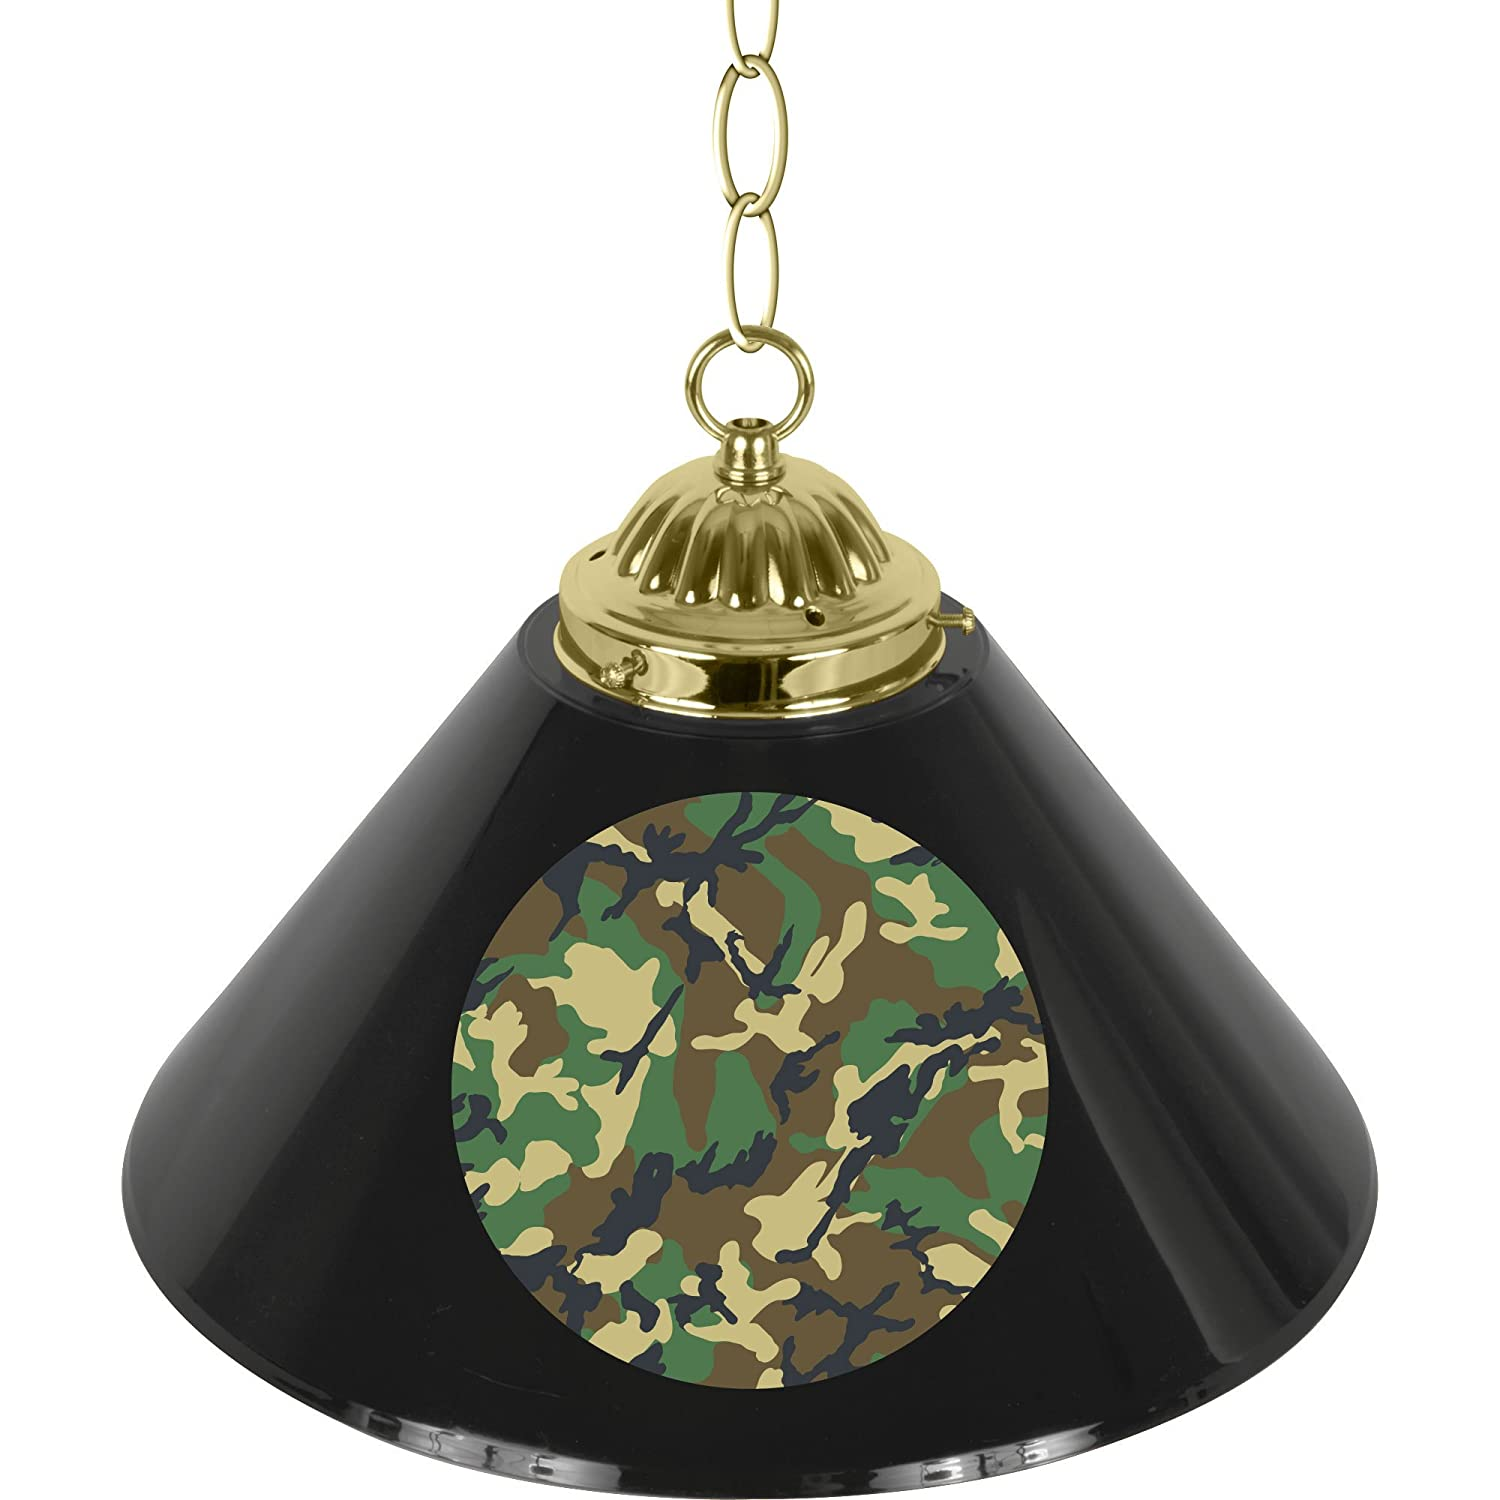 HUNT1200-CAMO Hunt Camo Single Shade Bar Lamp - 14 inch   B007IRIFGO